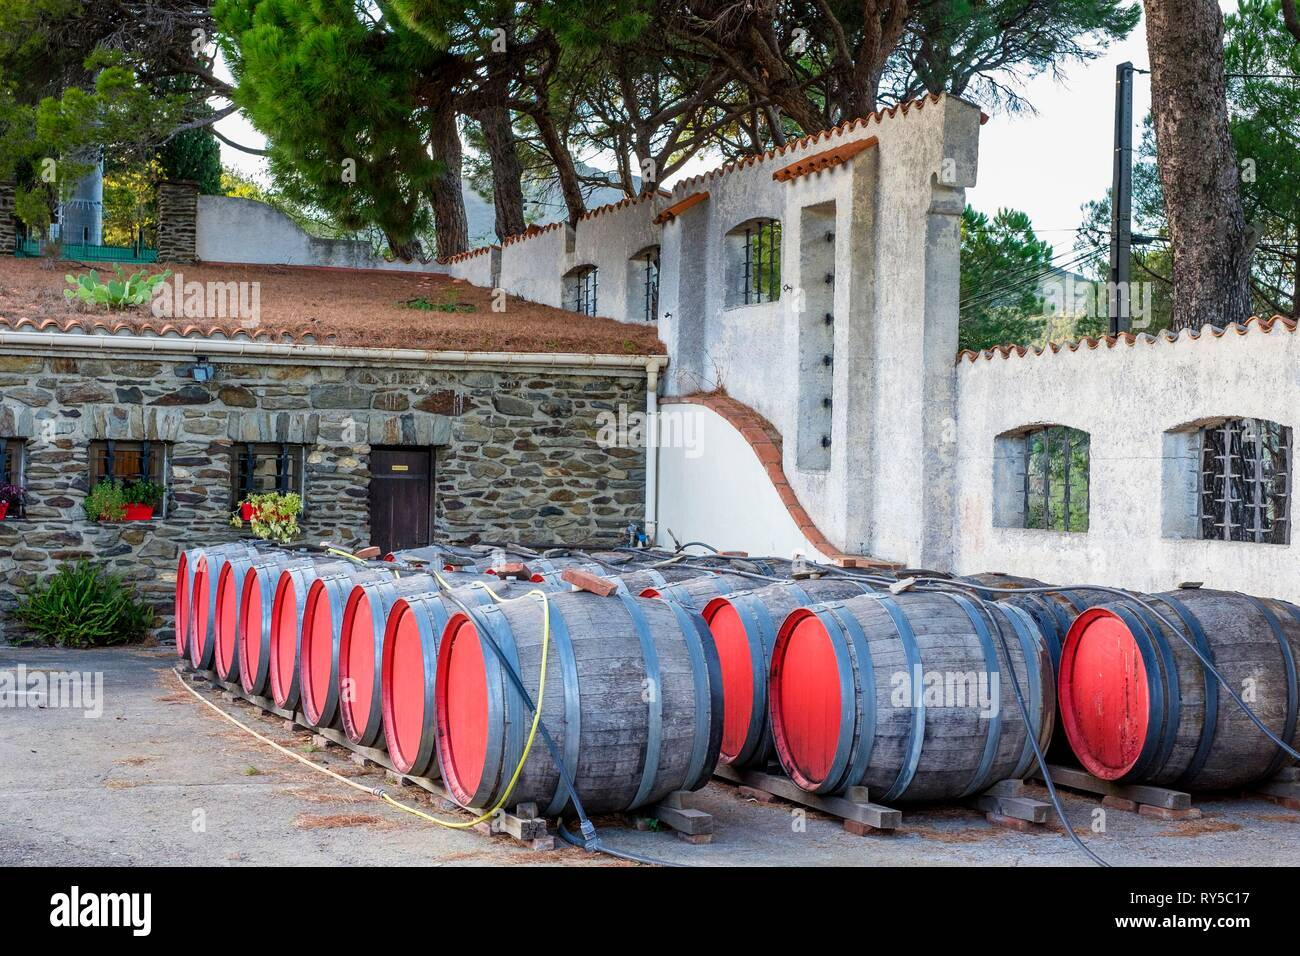 France, Pyrenees Orientales, Cote Vermeille, Banyuls-sur-Mer, the cellar of Terres des Templiers vineyard (AOC Banyuls and Collioure) - Stock Image